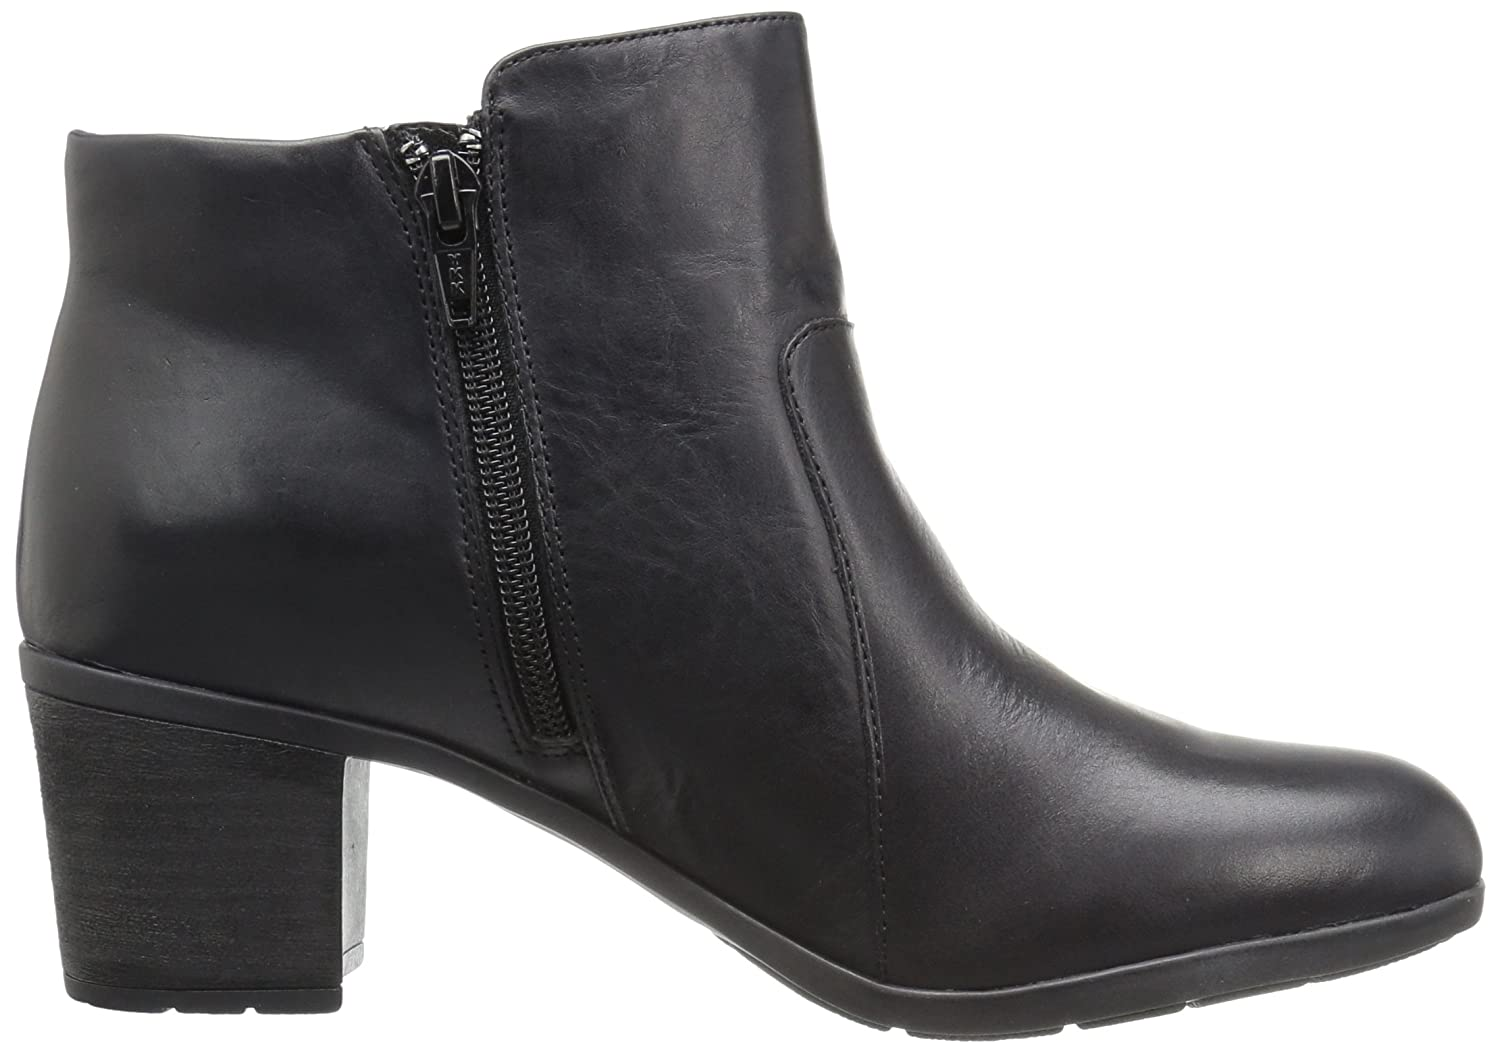 Easy Spirit Women's Billian Boot Leather B01DBEHE0K 8.5 B(M) US|Black Leather Boot 7afff4